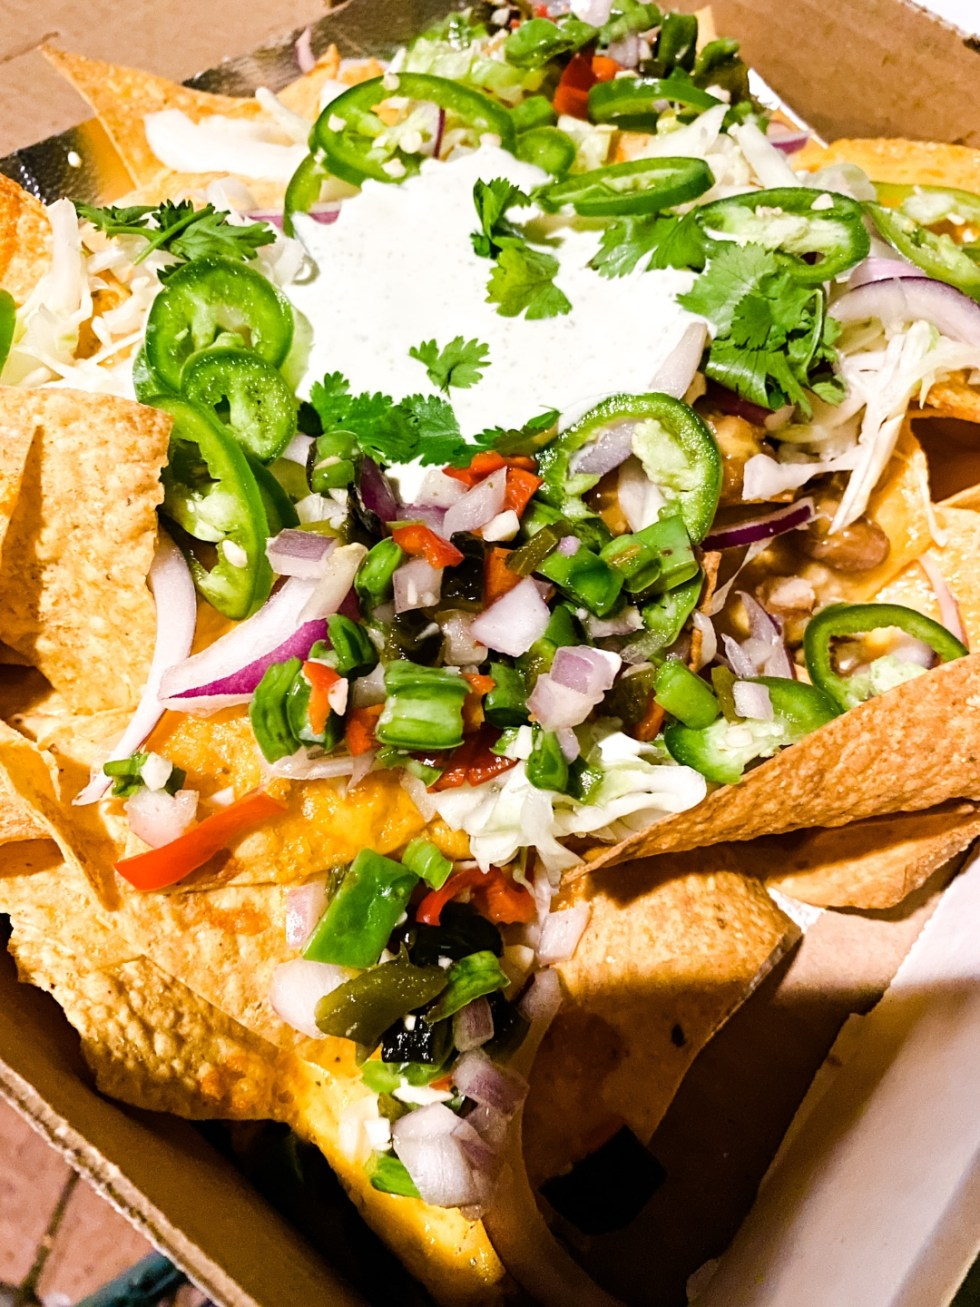 Date Night at the The Streetery in Downtown Durham - I'm Fixin' To - @mbg0112 |The Streetery in Downtown Durham by popular N.C. blog, I'm Fixin' To: image of a box of nachos at Jack Tar.